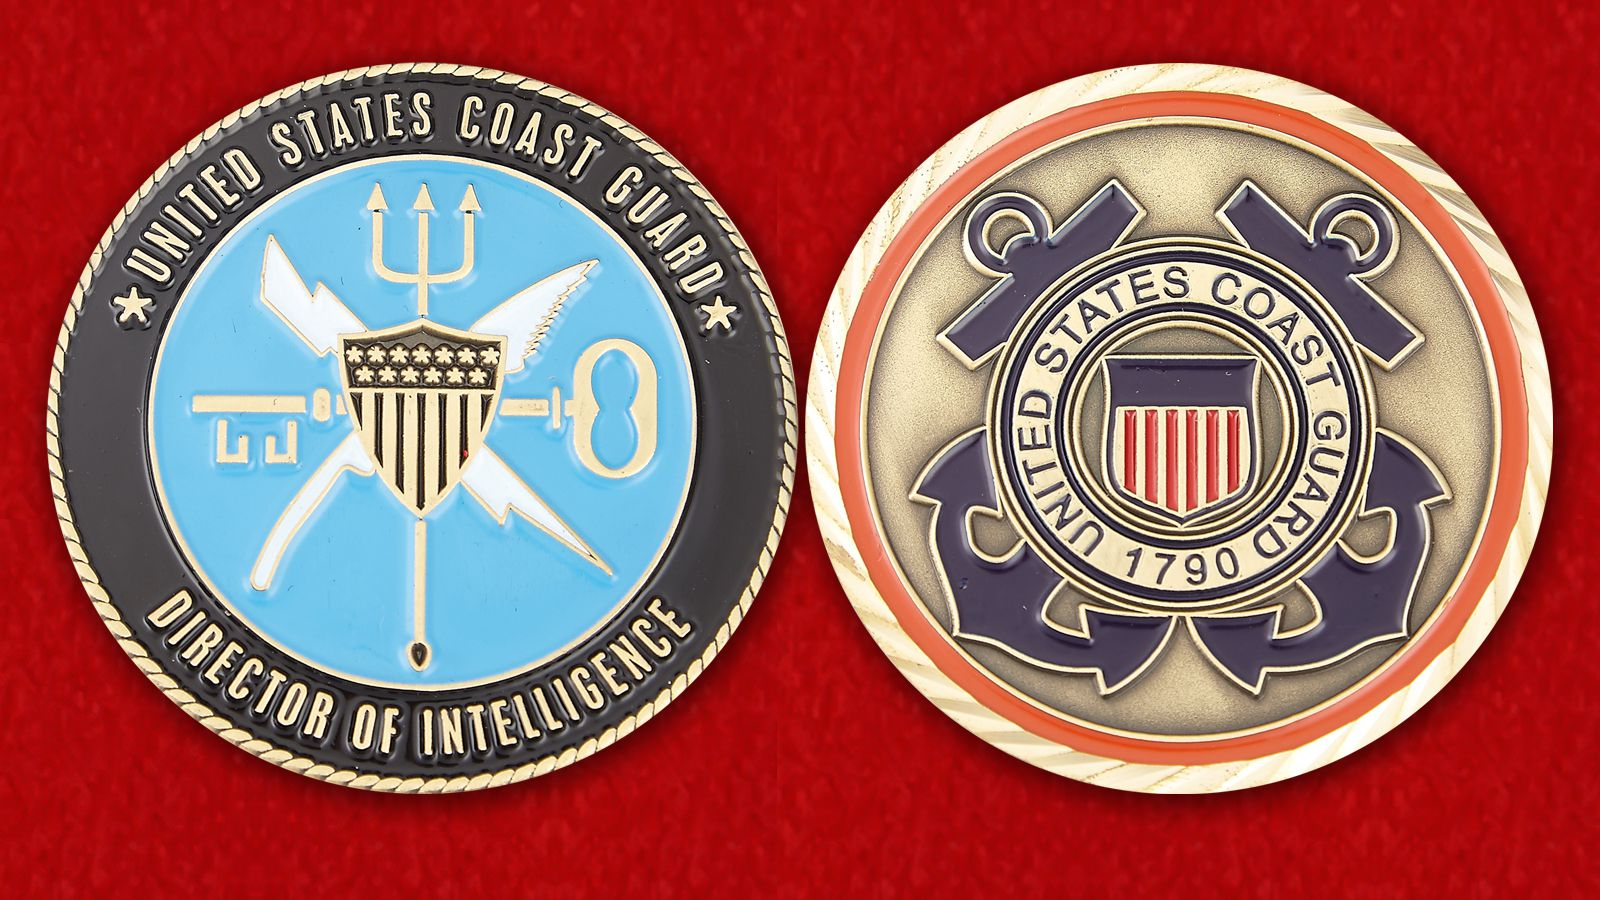 United States Coast Guard Director of Intelligence Challenge Coin - obverse and reverse